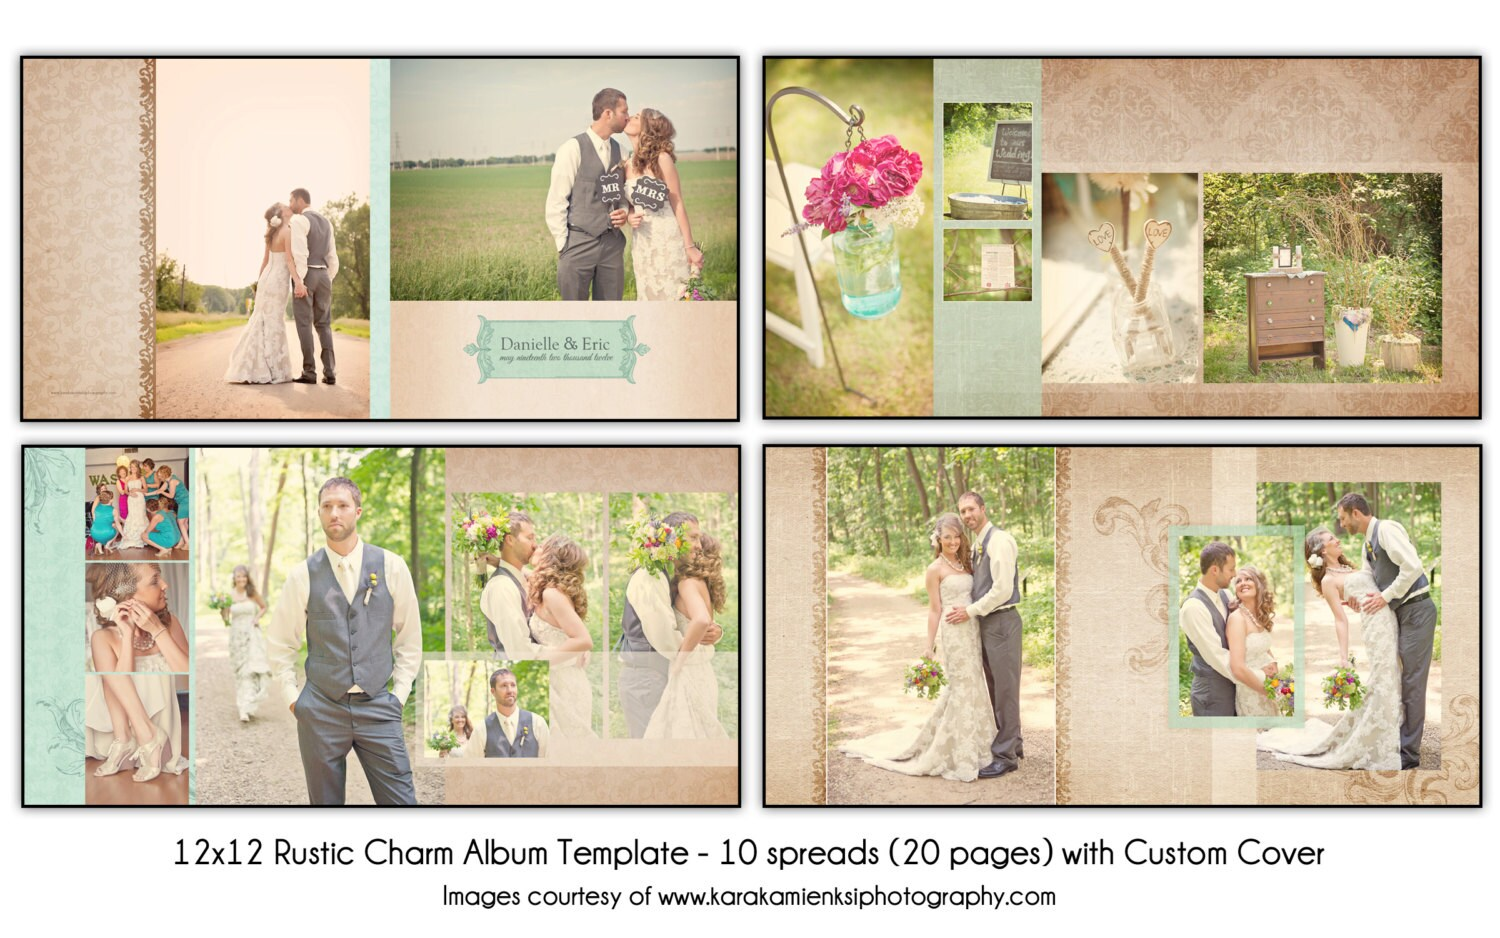 Rustic charm 12x12 wedding album template 10 spread for Wedding photo album templates in photoshop